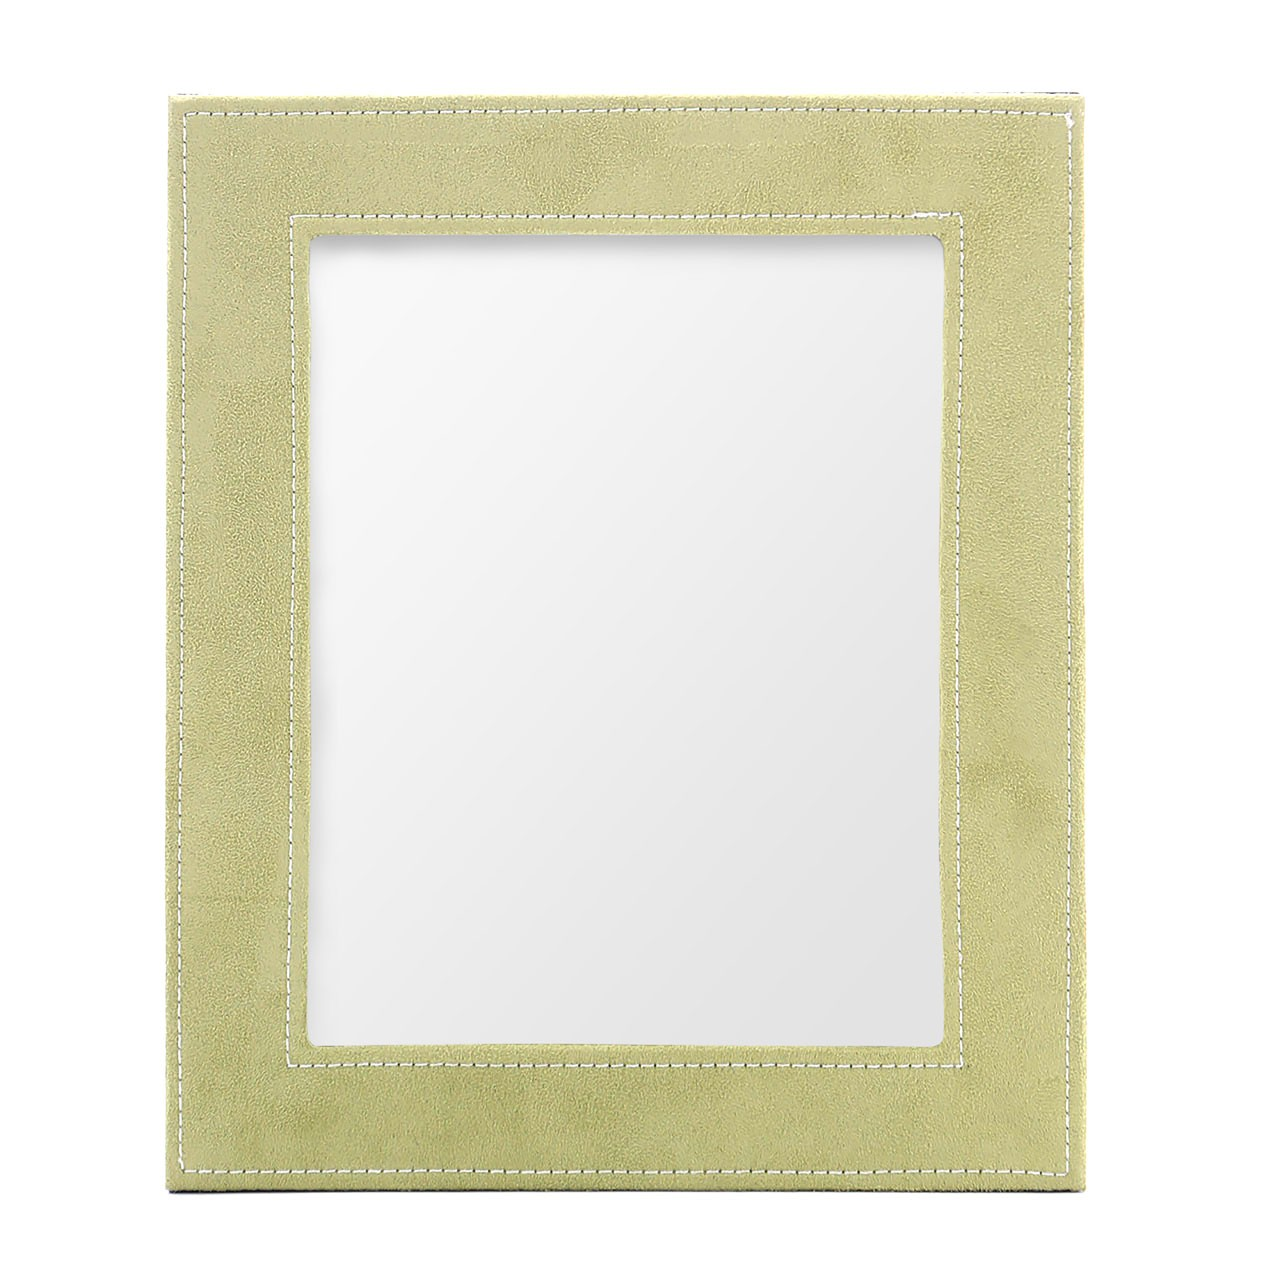 Photo Frame, Light Green Faux Suede